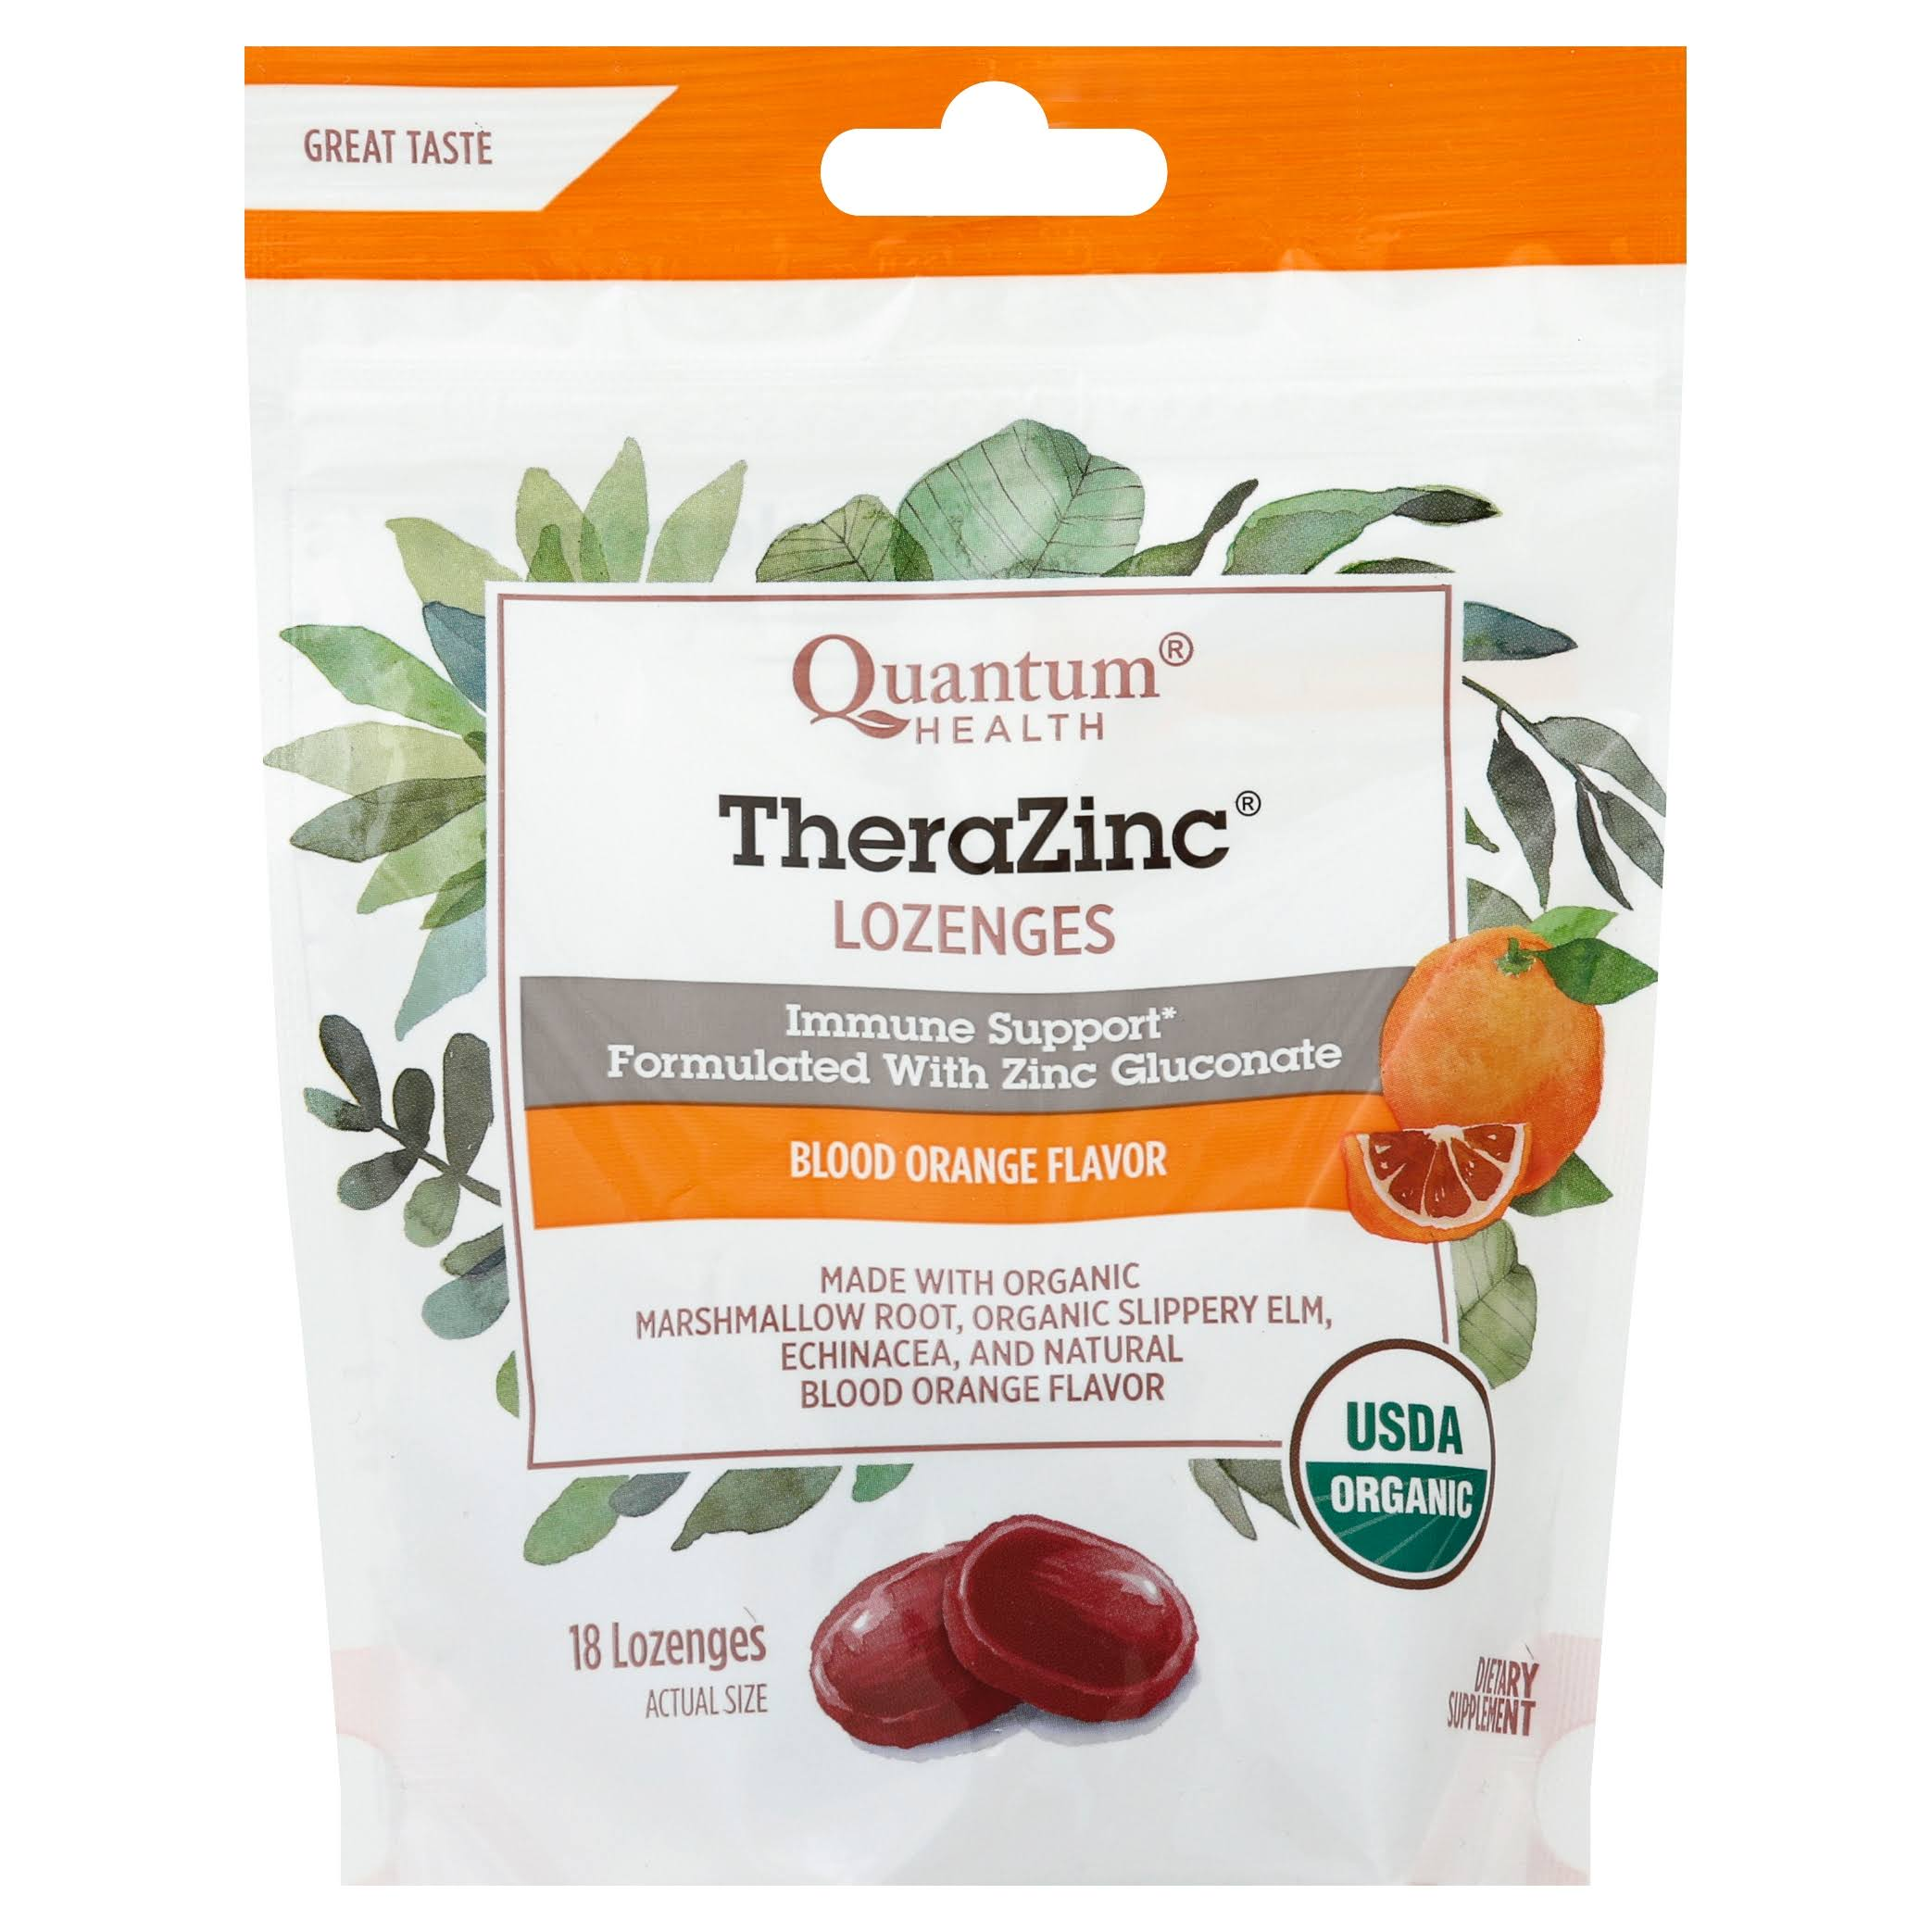 Quantum Organic TheraZinc Lozenges Supplement - Blood Orange, 18 Count